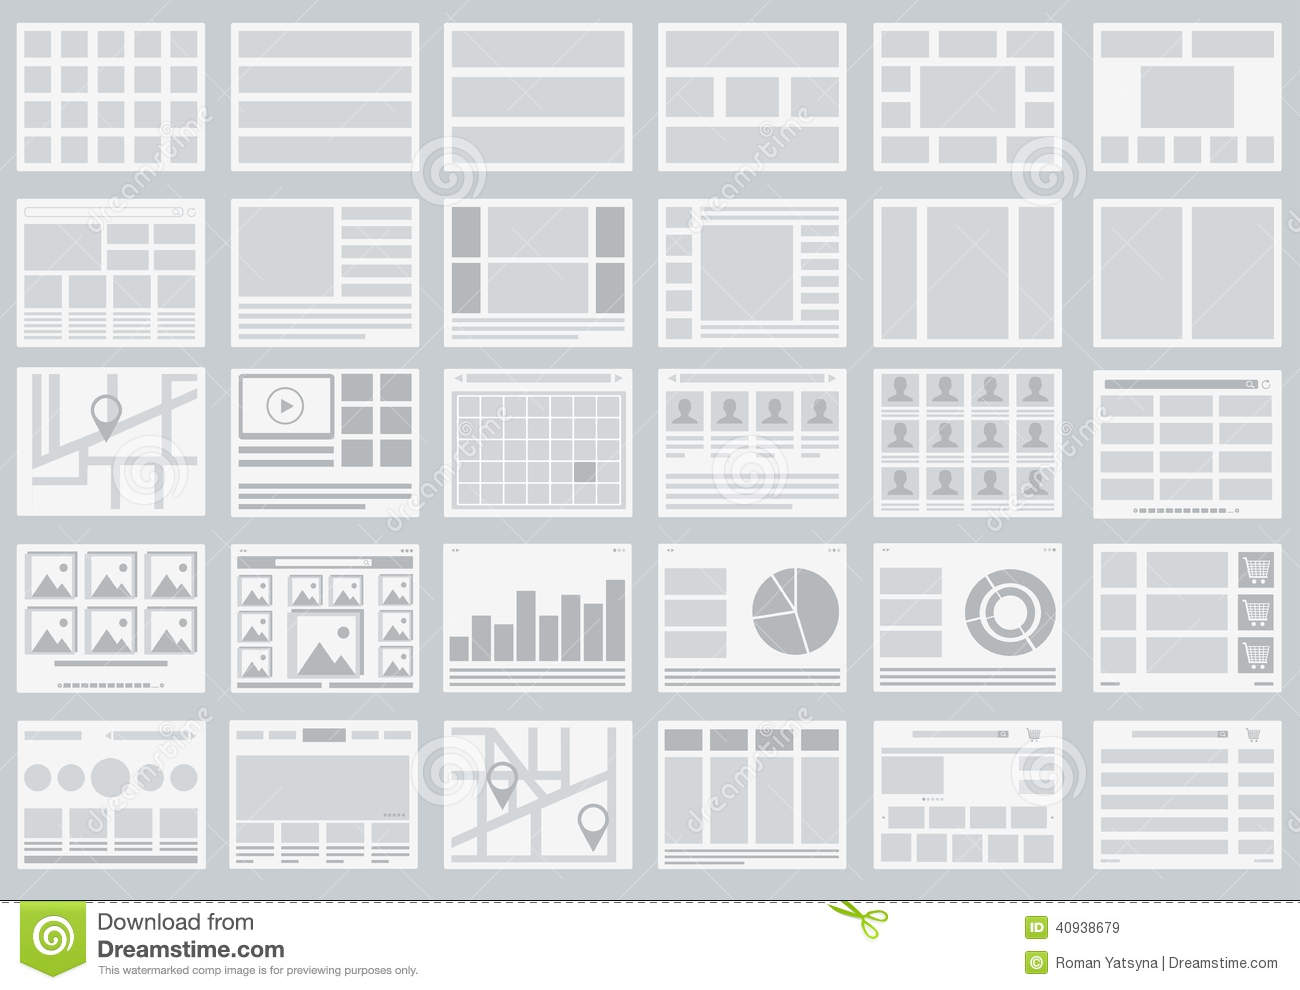 Websitestroomschema s, lay-outs van lusjes, infographics, kaarten